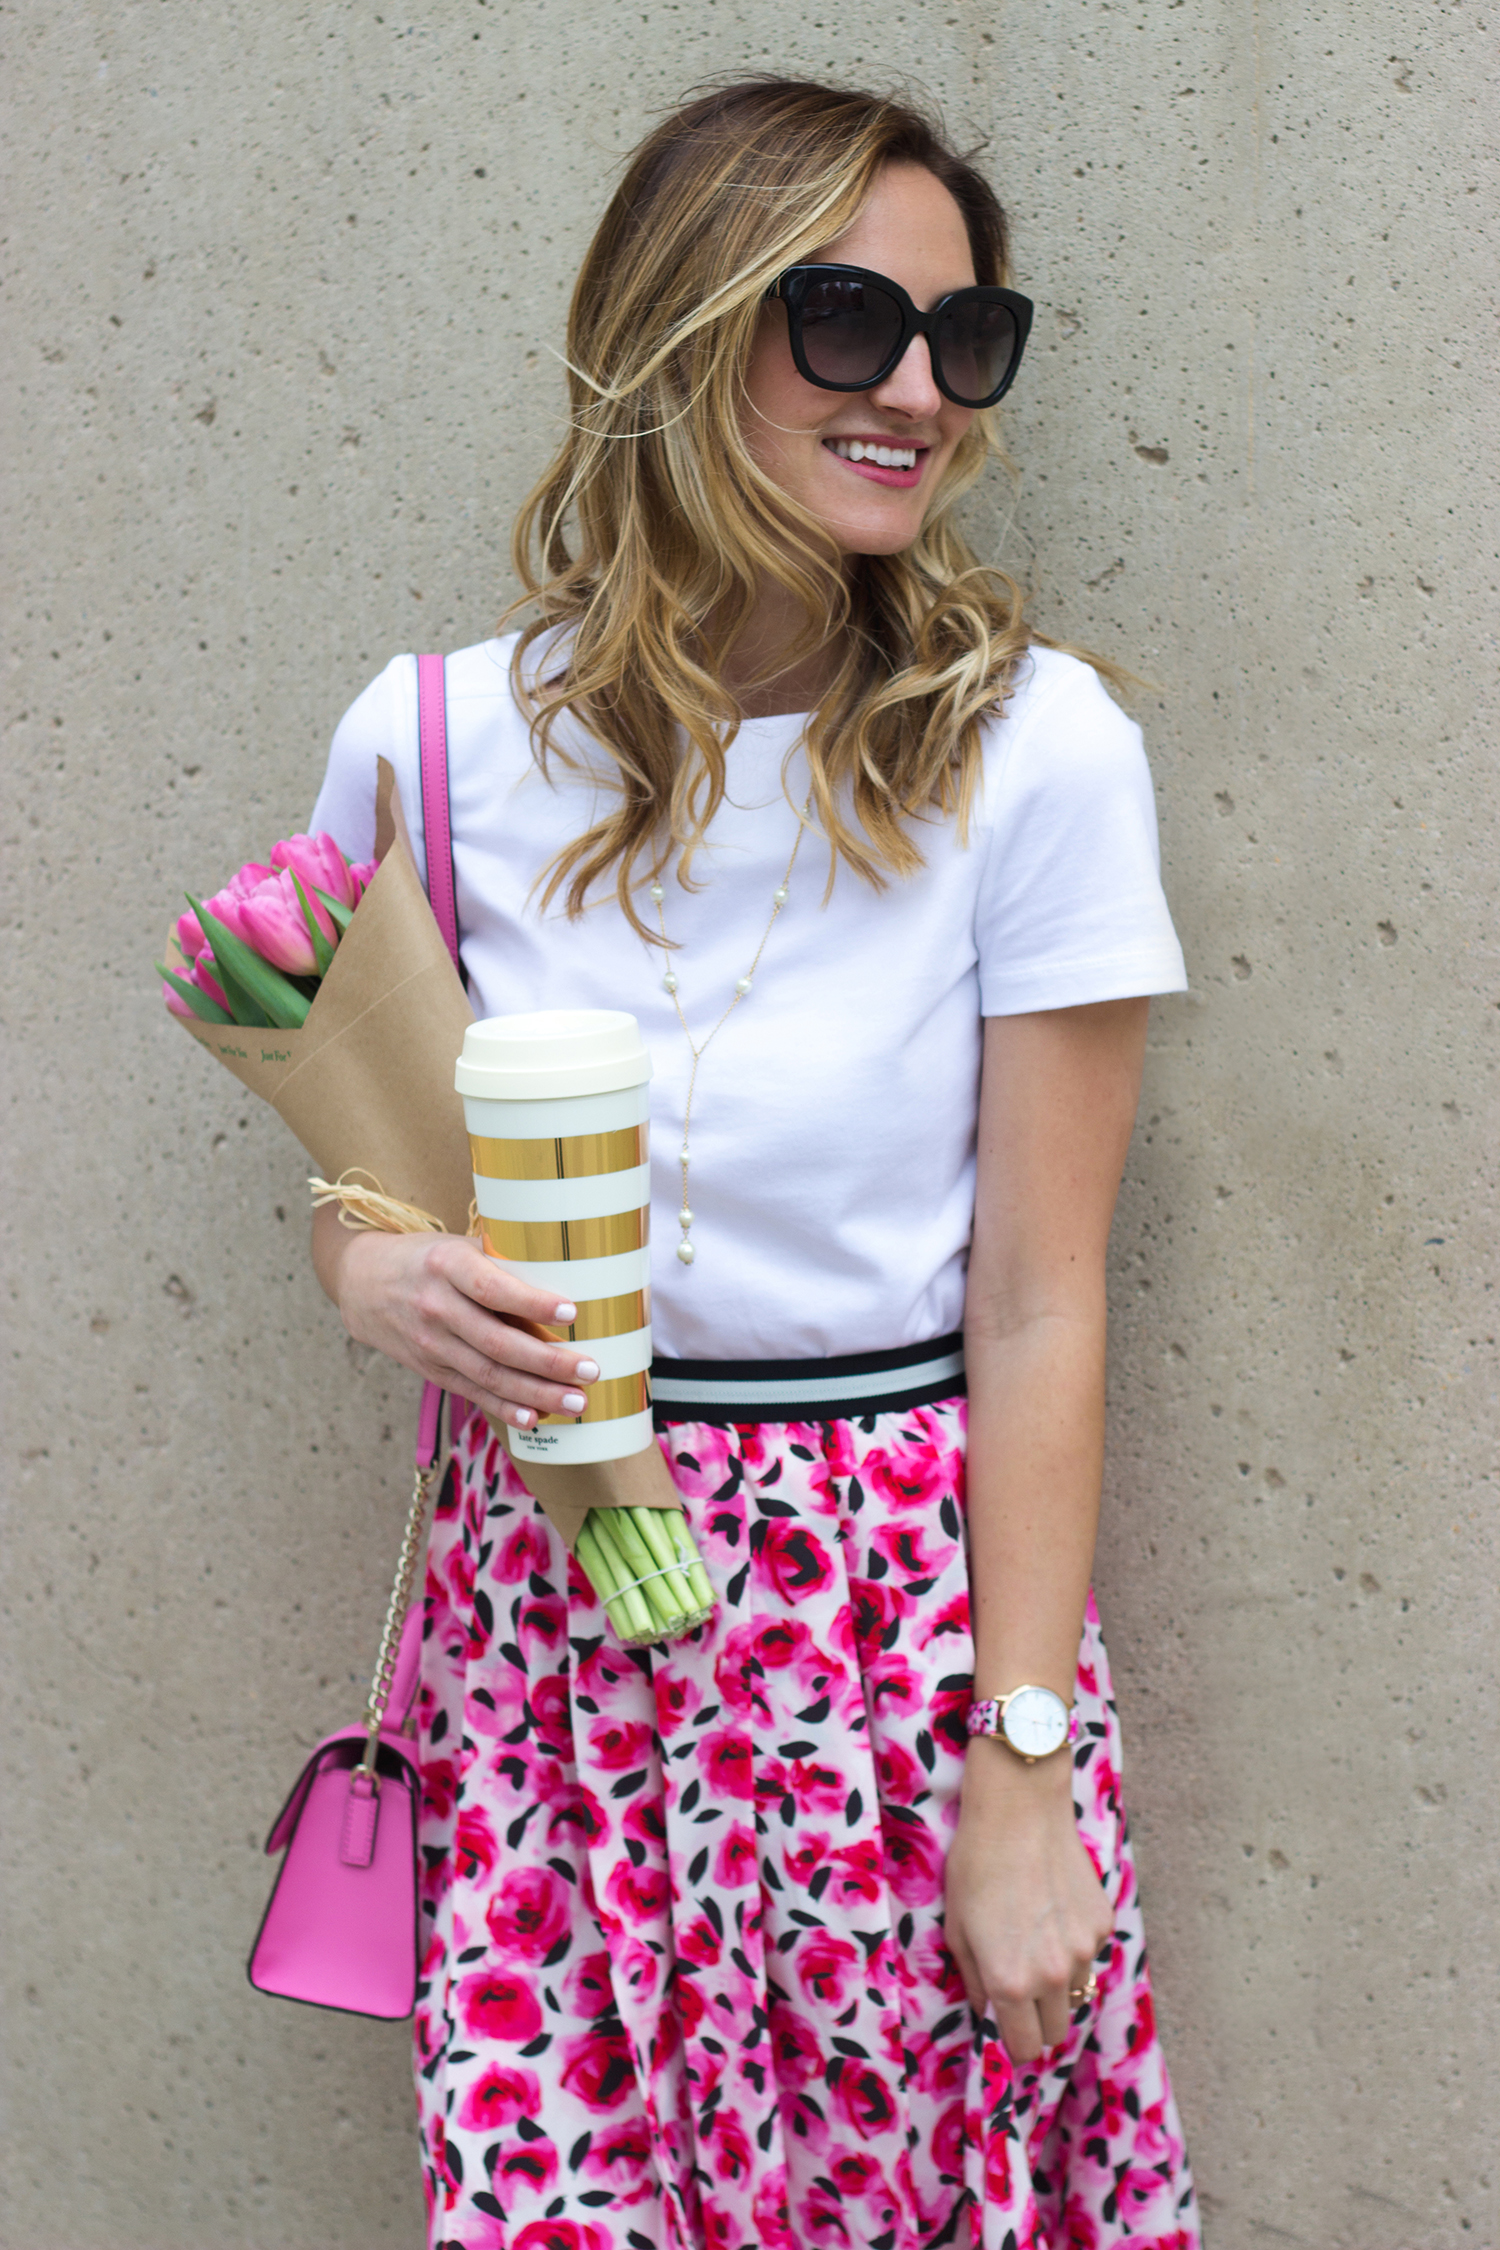 livvyland-blog-olivia-watson-austin-texas-fashion-blogger-kate-spade-broome-street-everyday-tee-white-rose-pleated-skirt-pink-black-spring-outfit-3